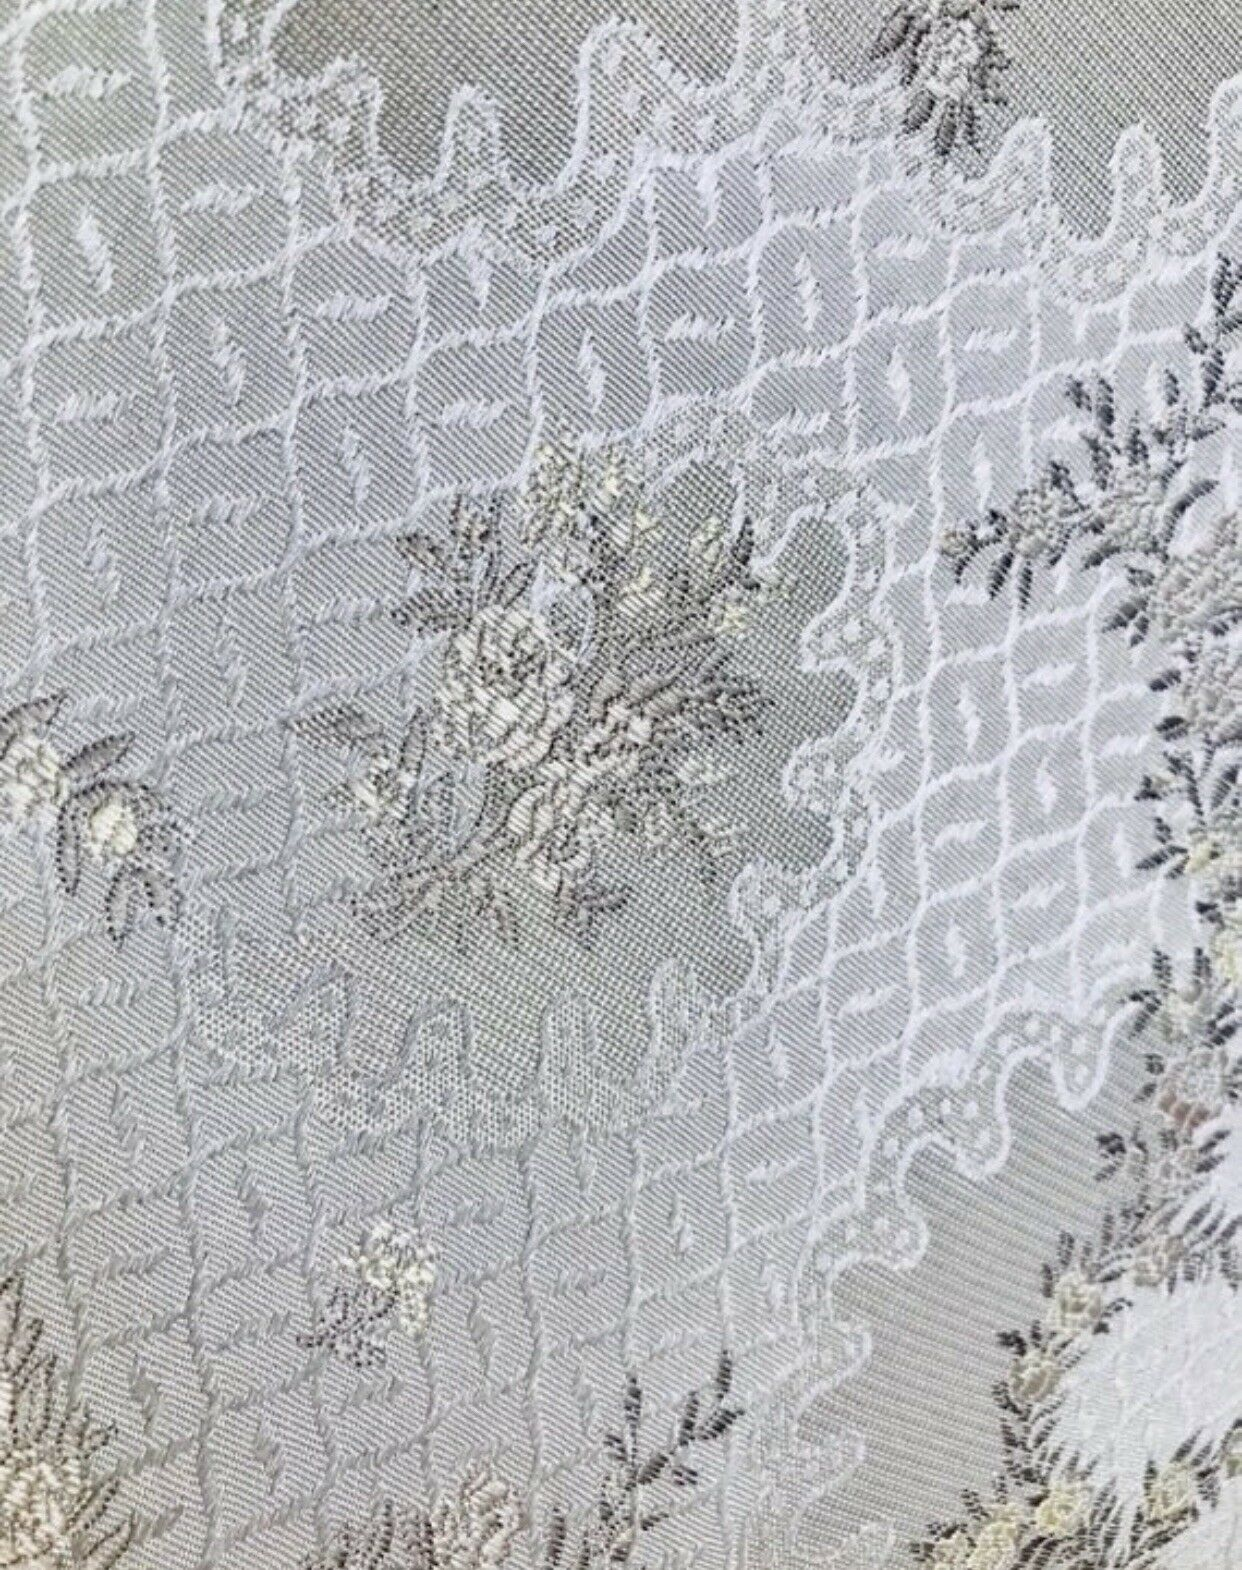 "SWATCH 4"" x 7"" - Brocade Jacquard Fabric- White,Ivory, Grey Floral- Upholstery"